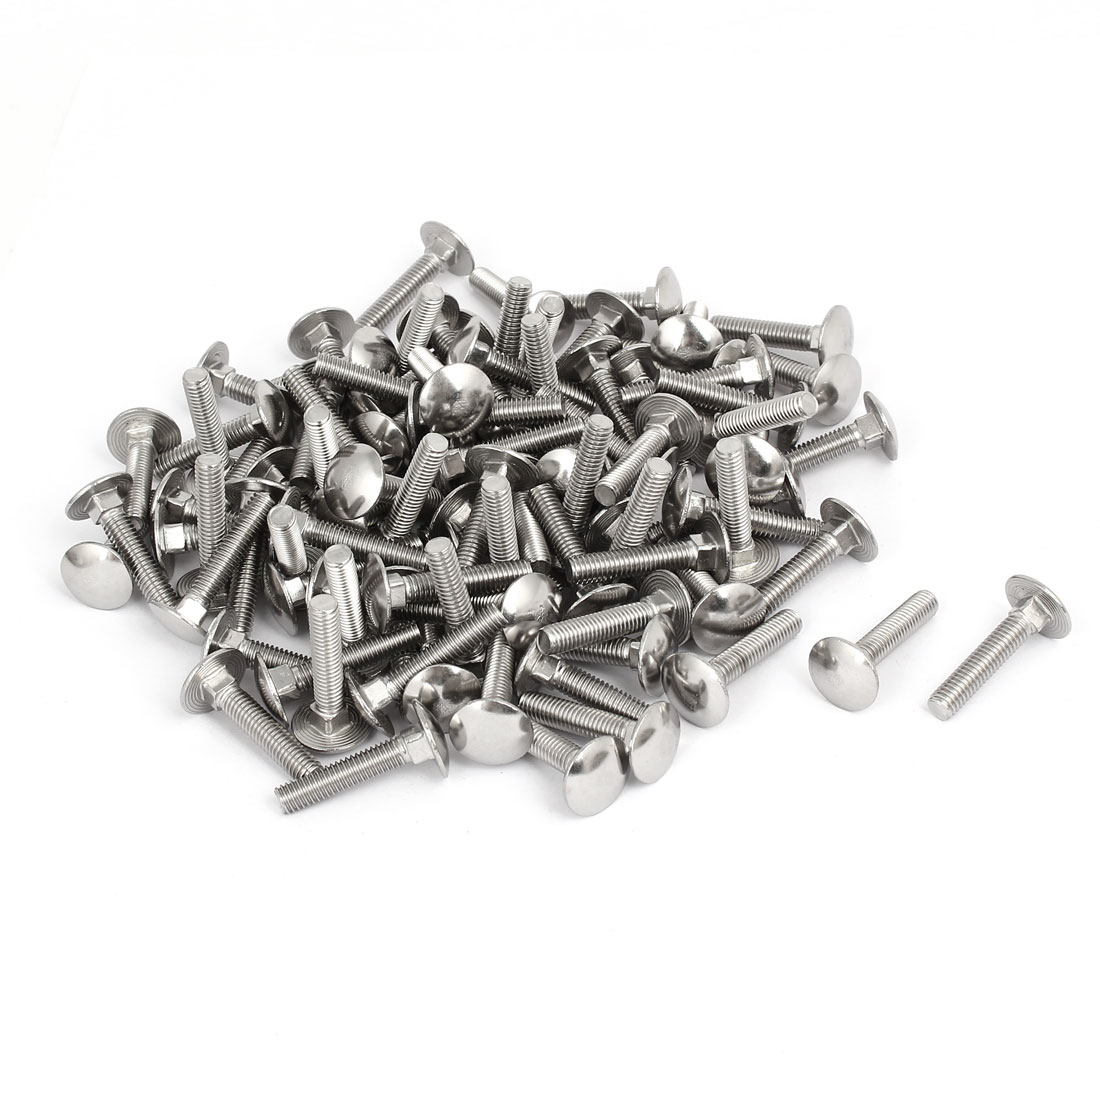 M6x30mm 304 Stainless Steel Round Head Square Neck Carriage Bolts DIN603 100pcs